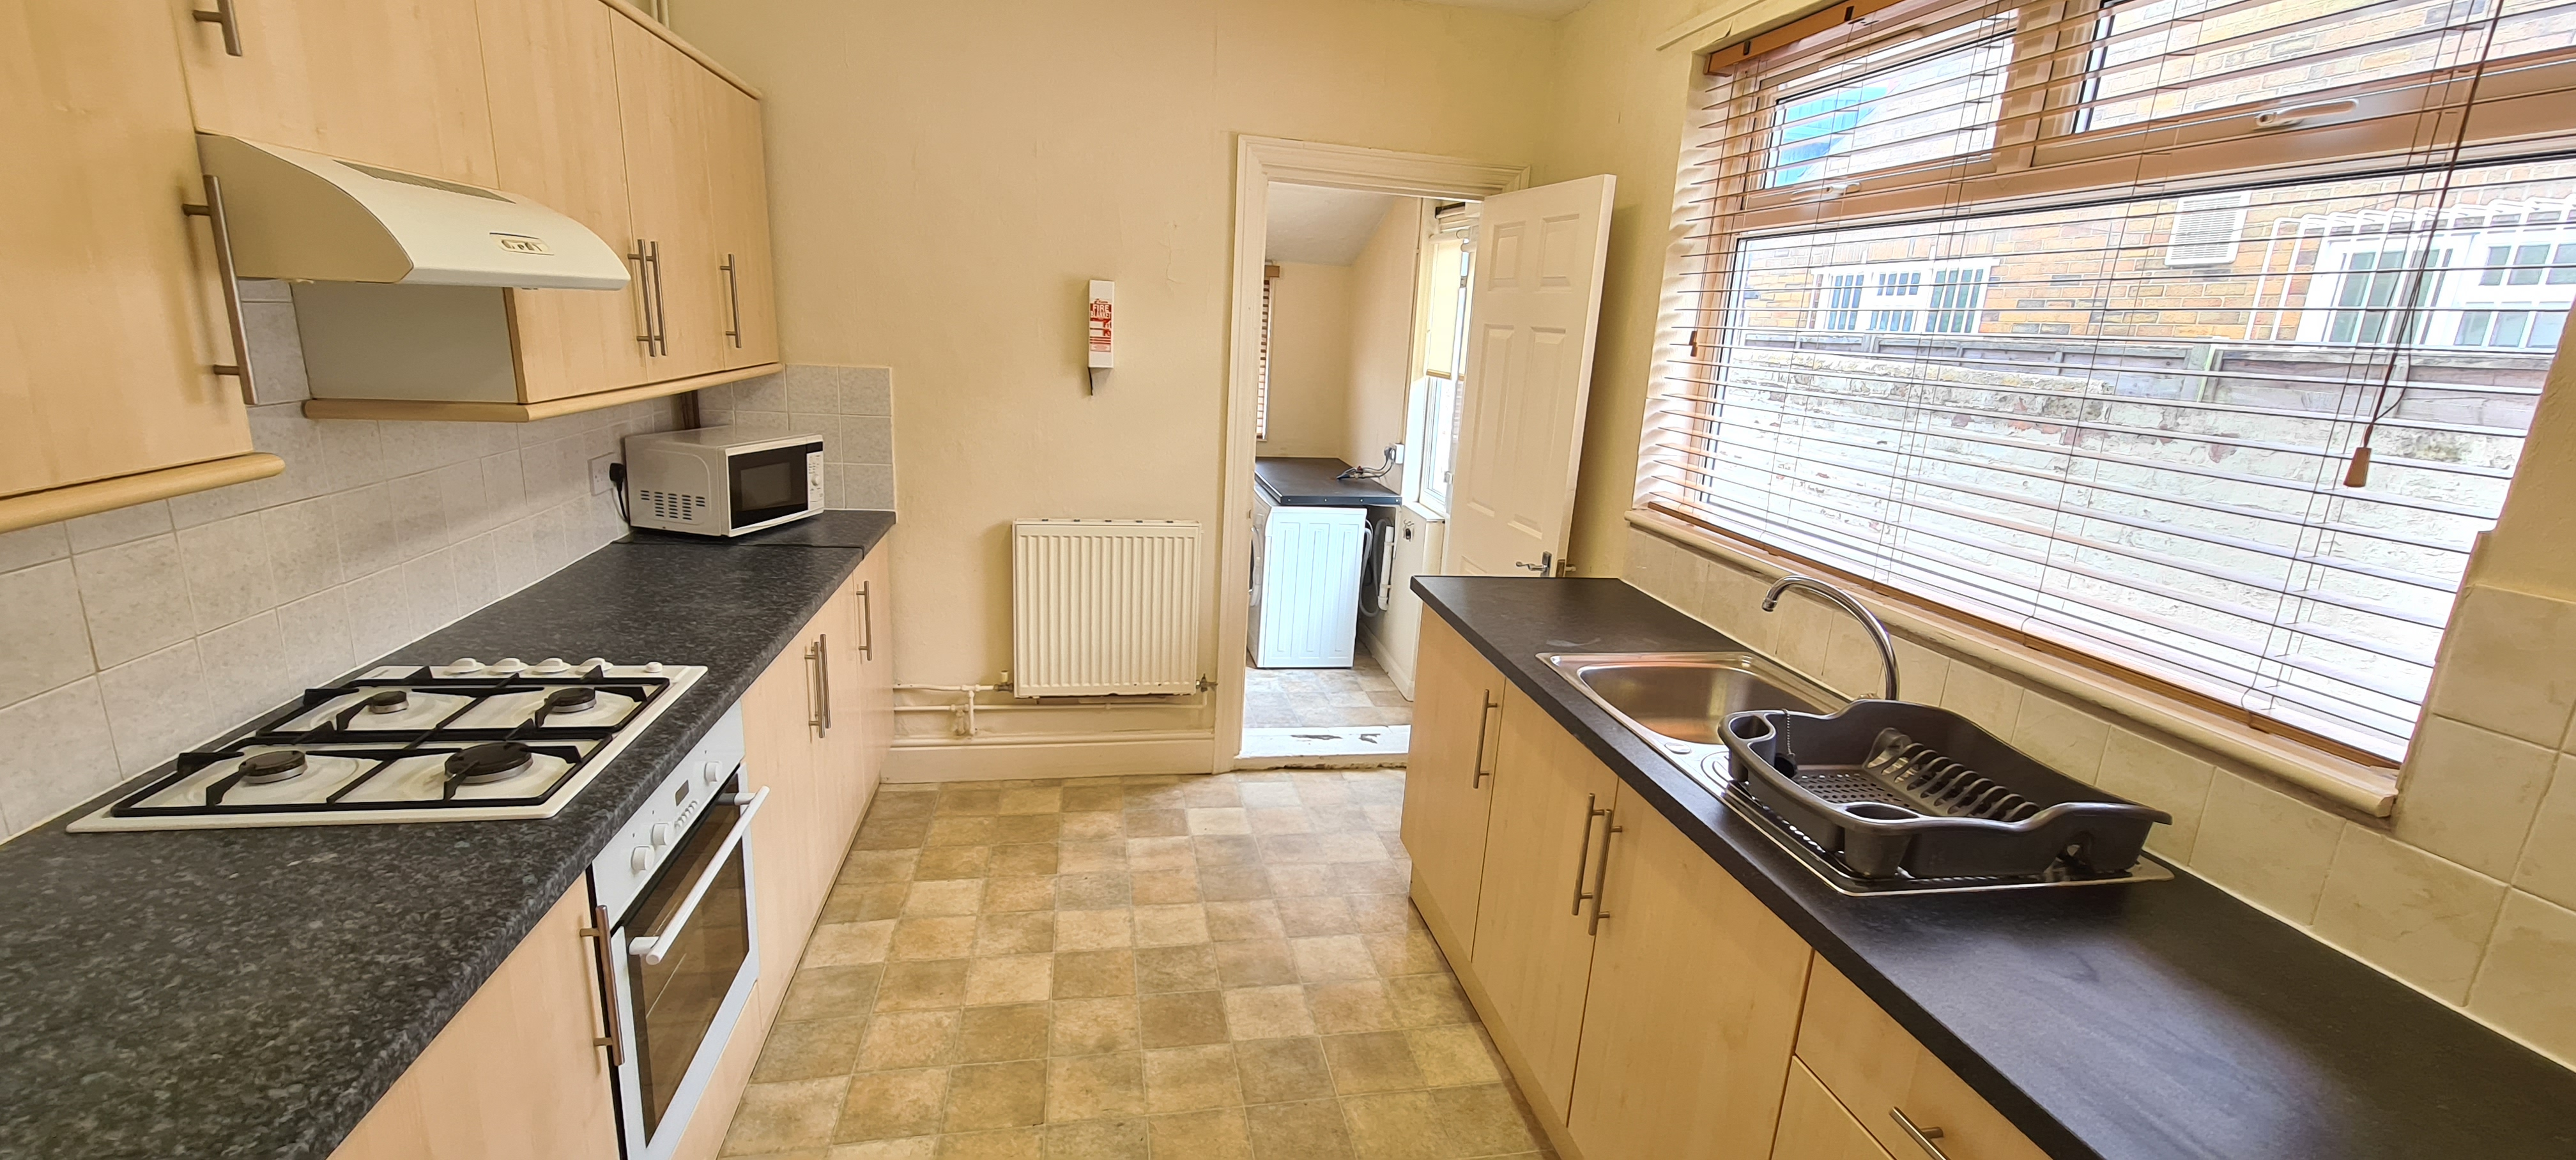 Longman Jones Student Accommodation Available academic year 21/22! Walgrave Street (Ref: 1407)